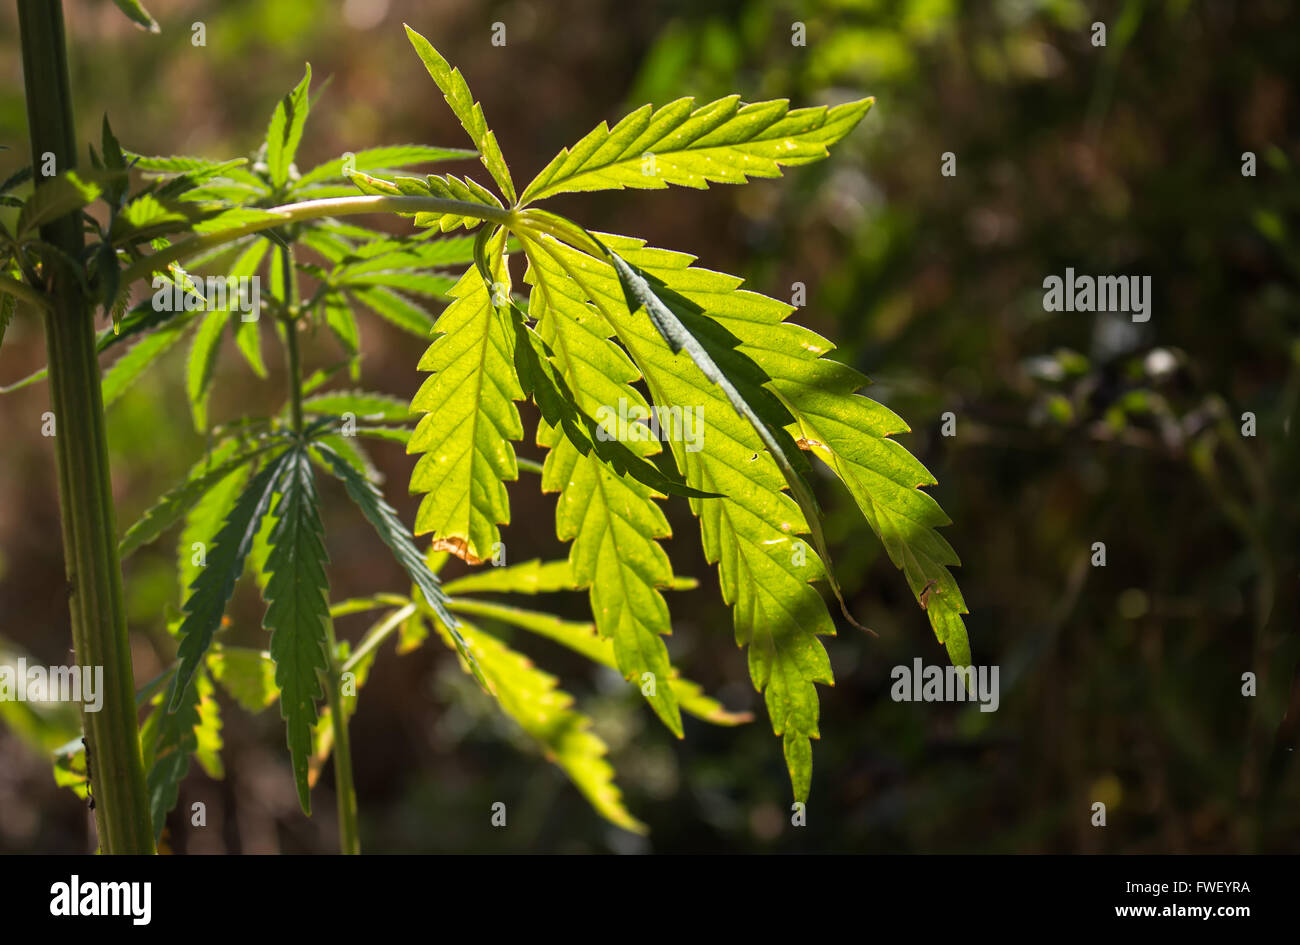 Fresh cannabis leaf growing in the nature, enlightened by the morning sunlight. - Stock Image